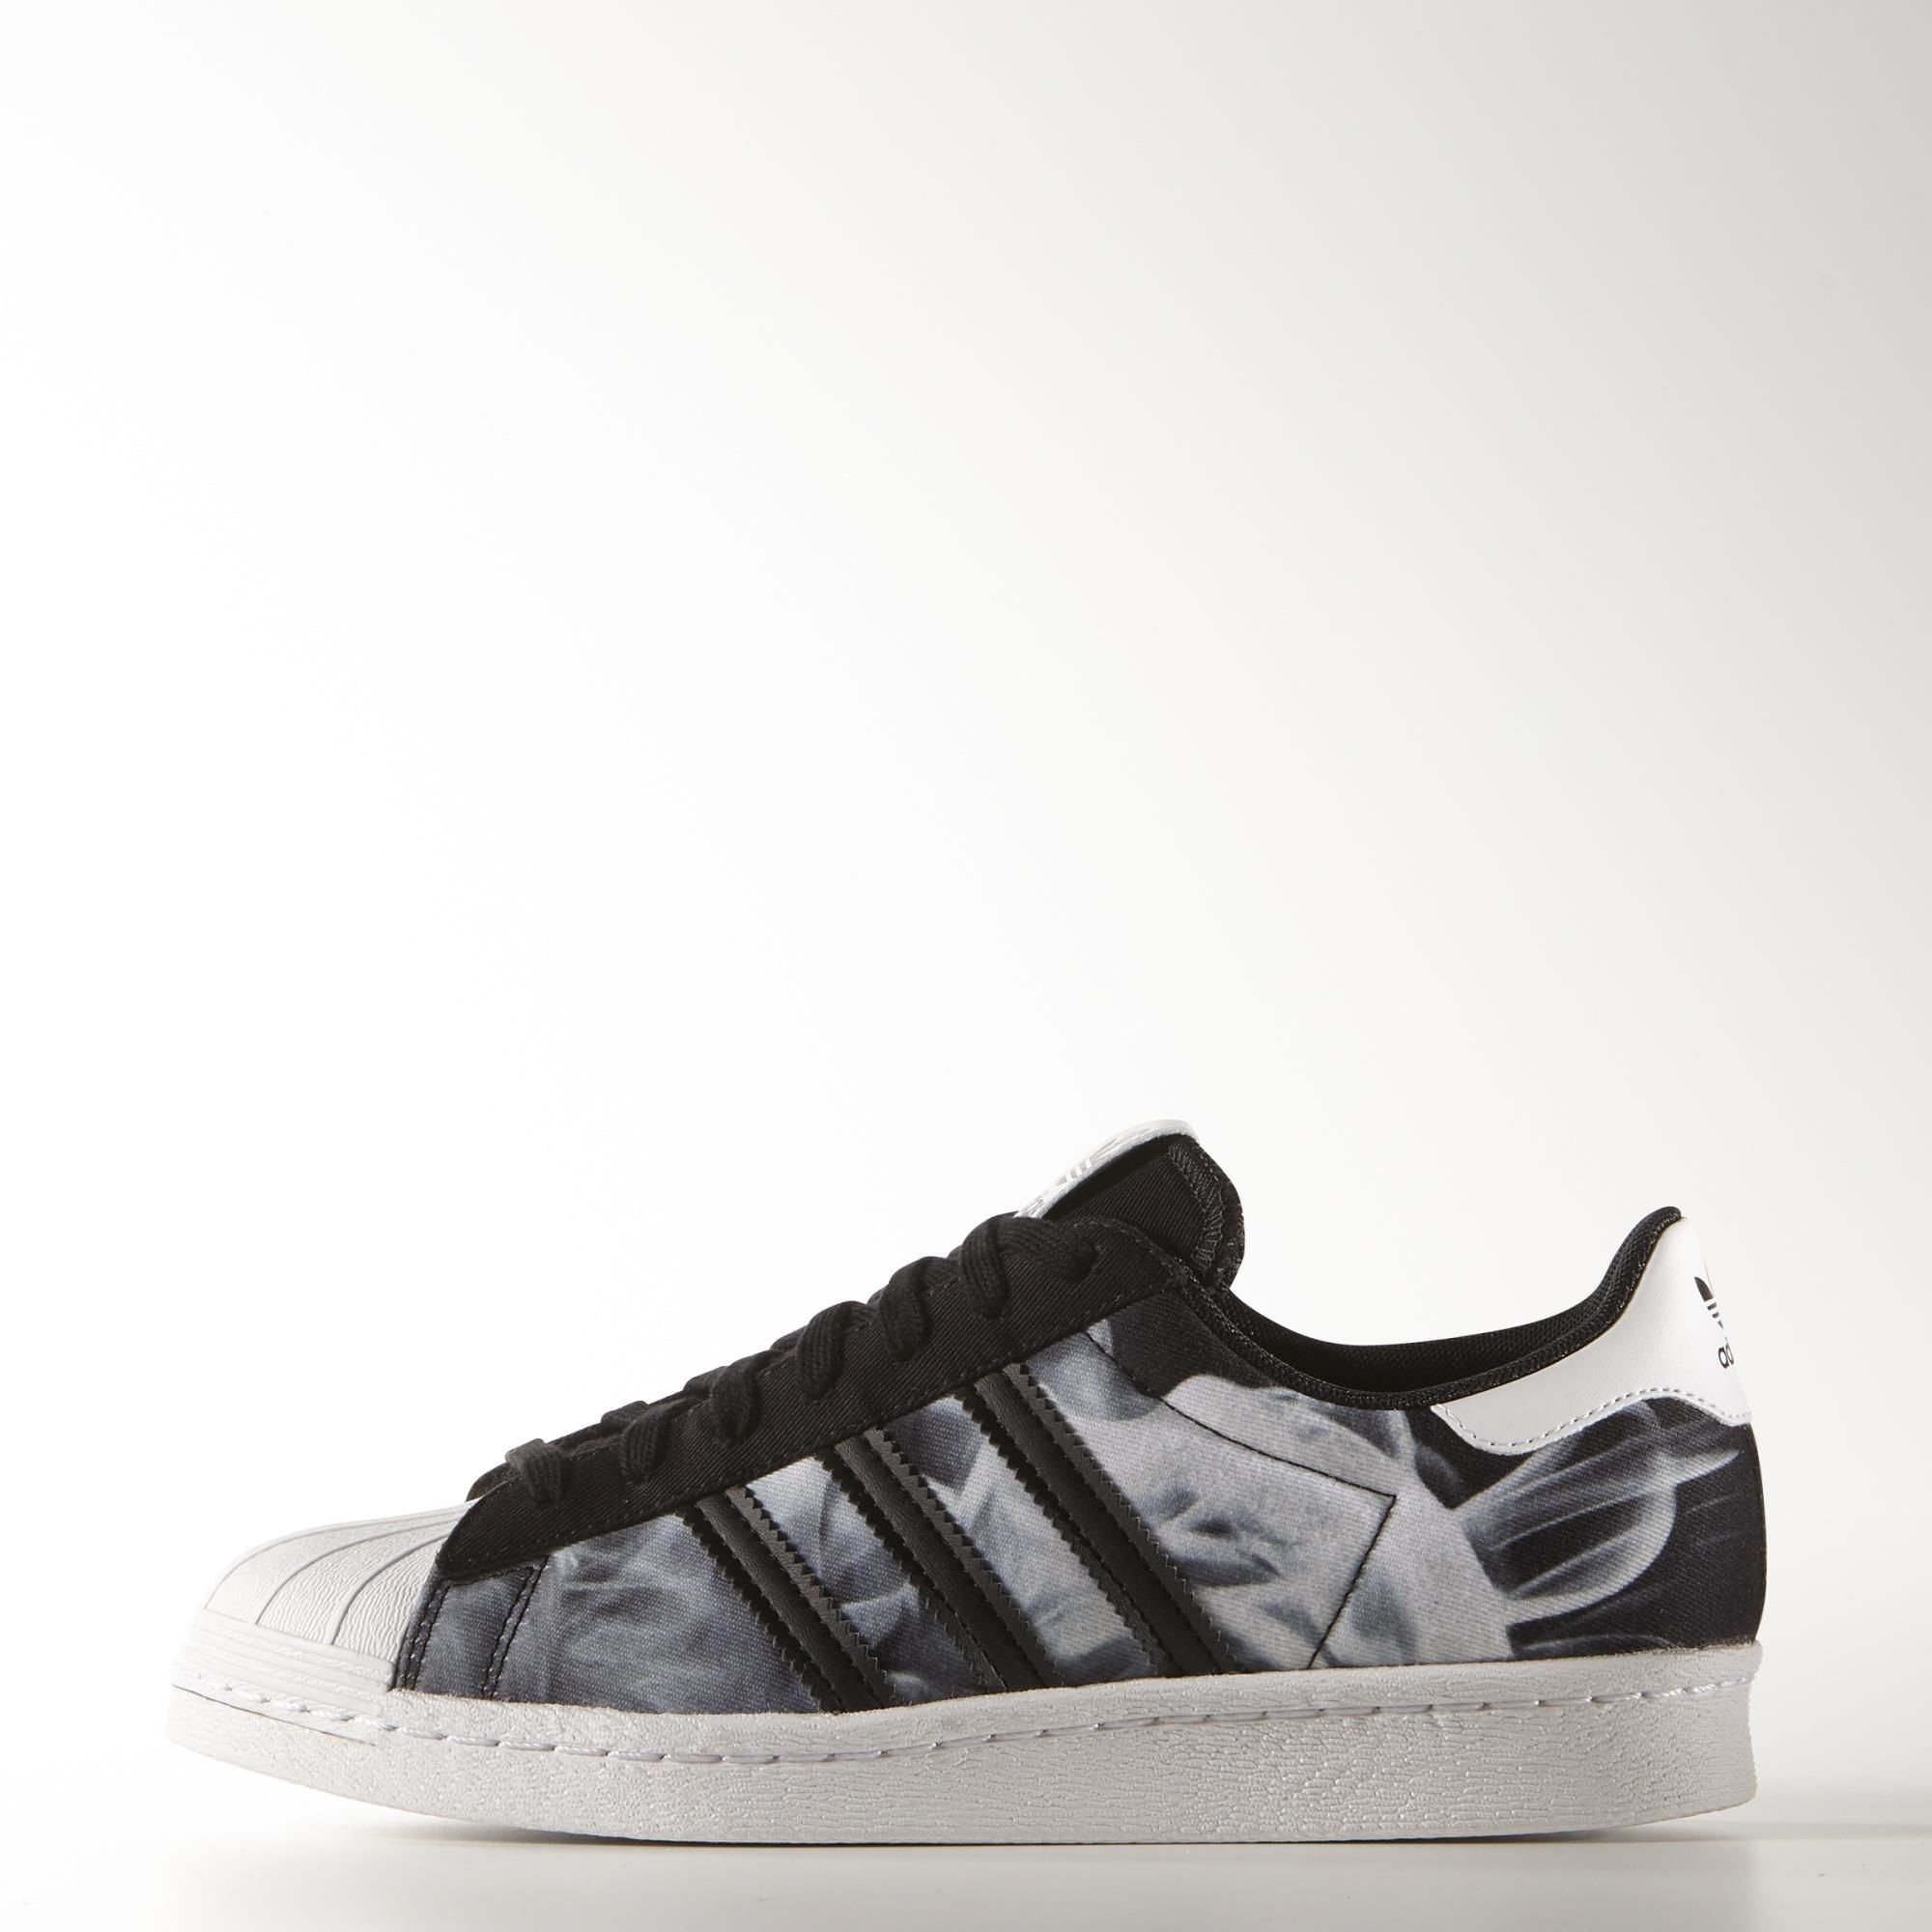 quality design 26556 ec0ae adidas Rita Ora Superstar 80s Shoes - Black | adidas UK ...